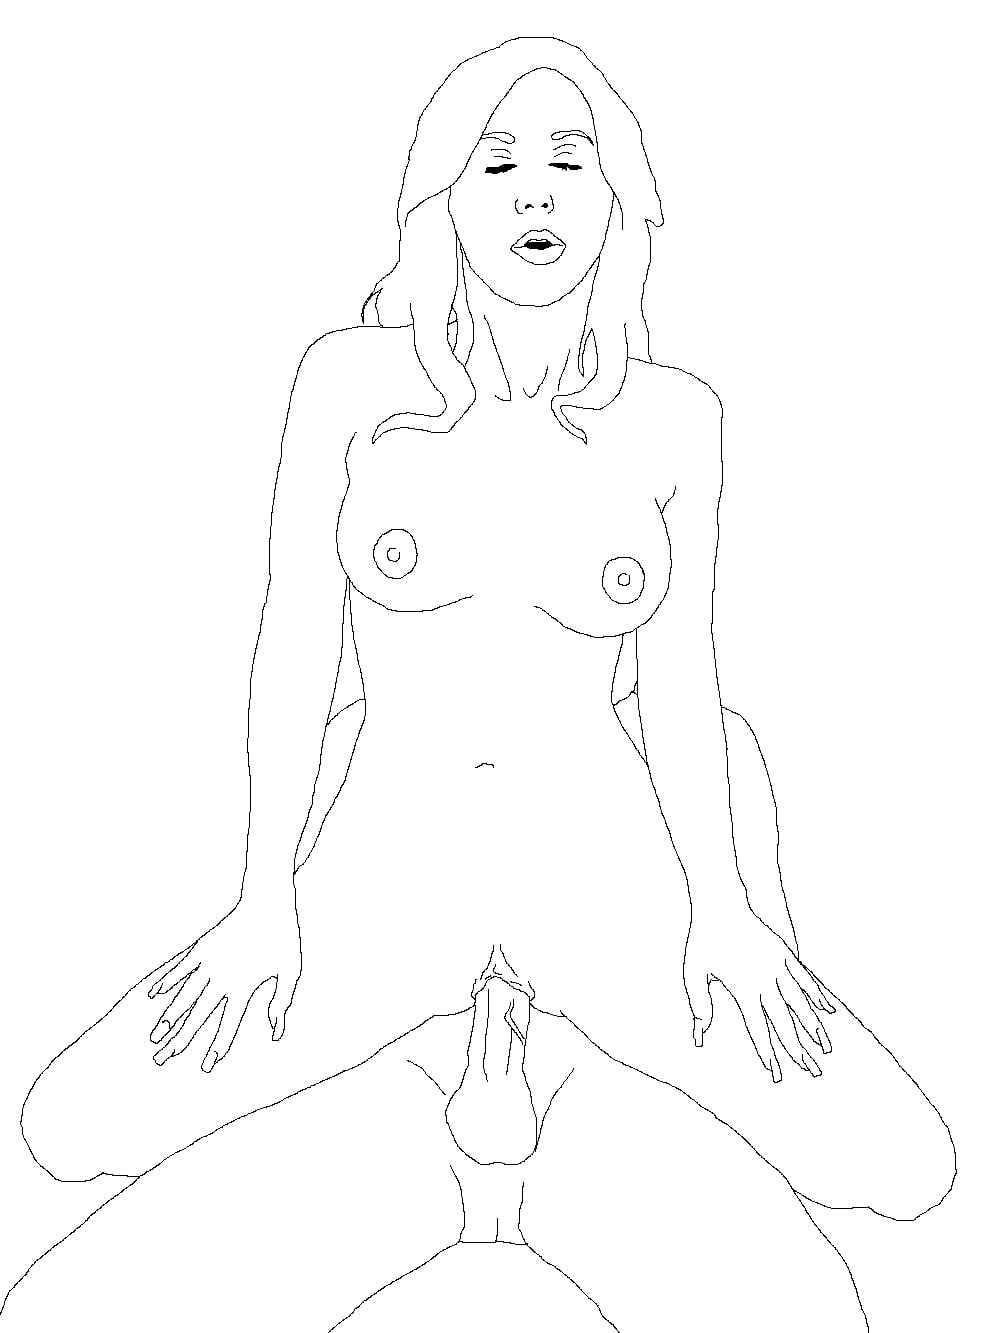 Porn Coloring Pages : coloring, pages, Adult, Coloring, Pages, Xhams.Gesek.Info